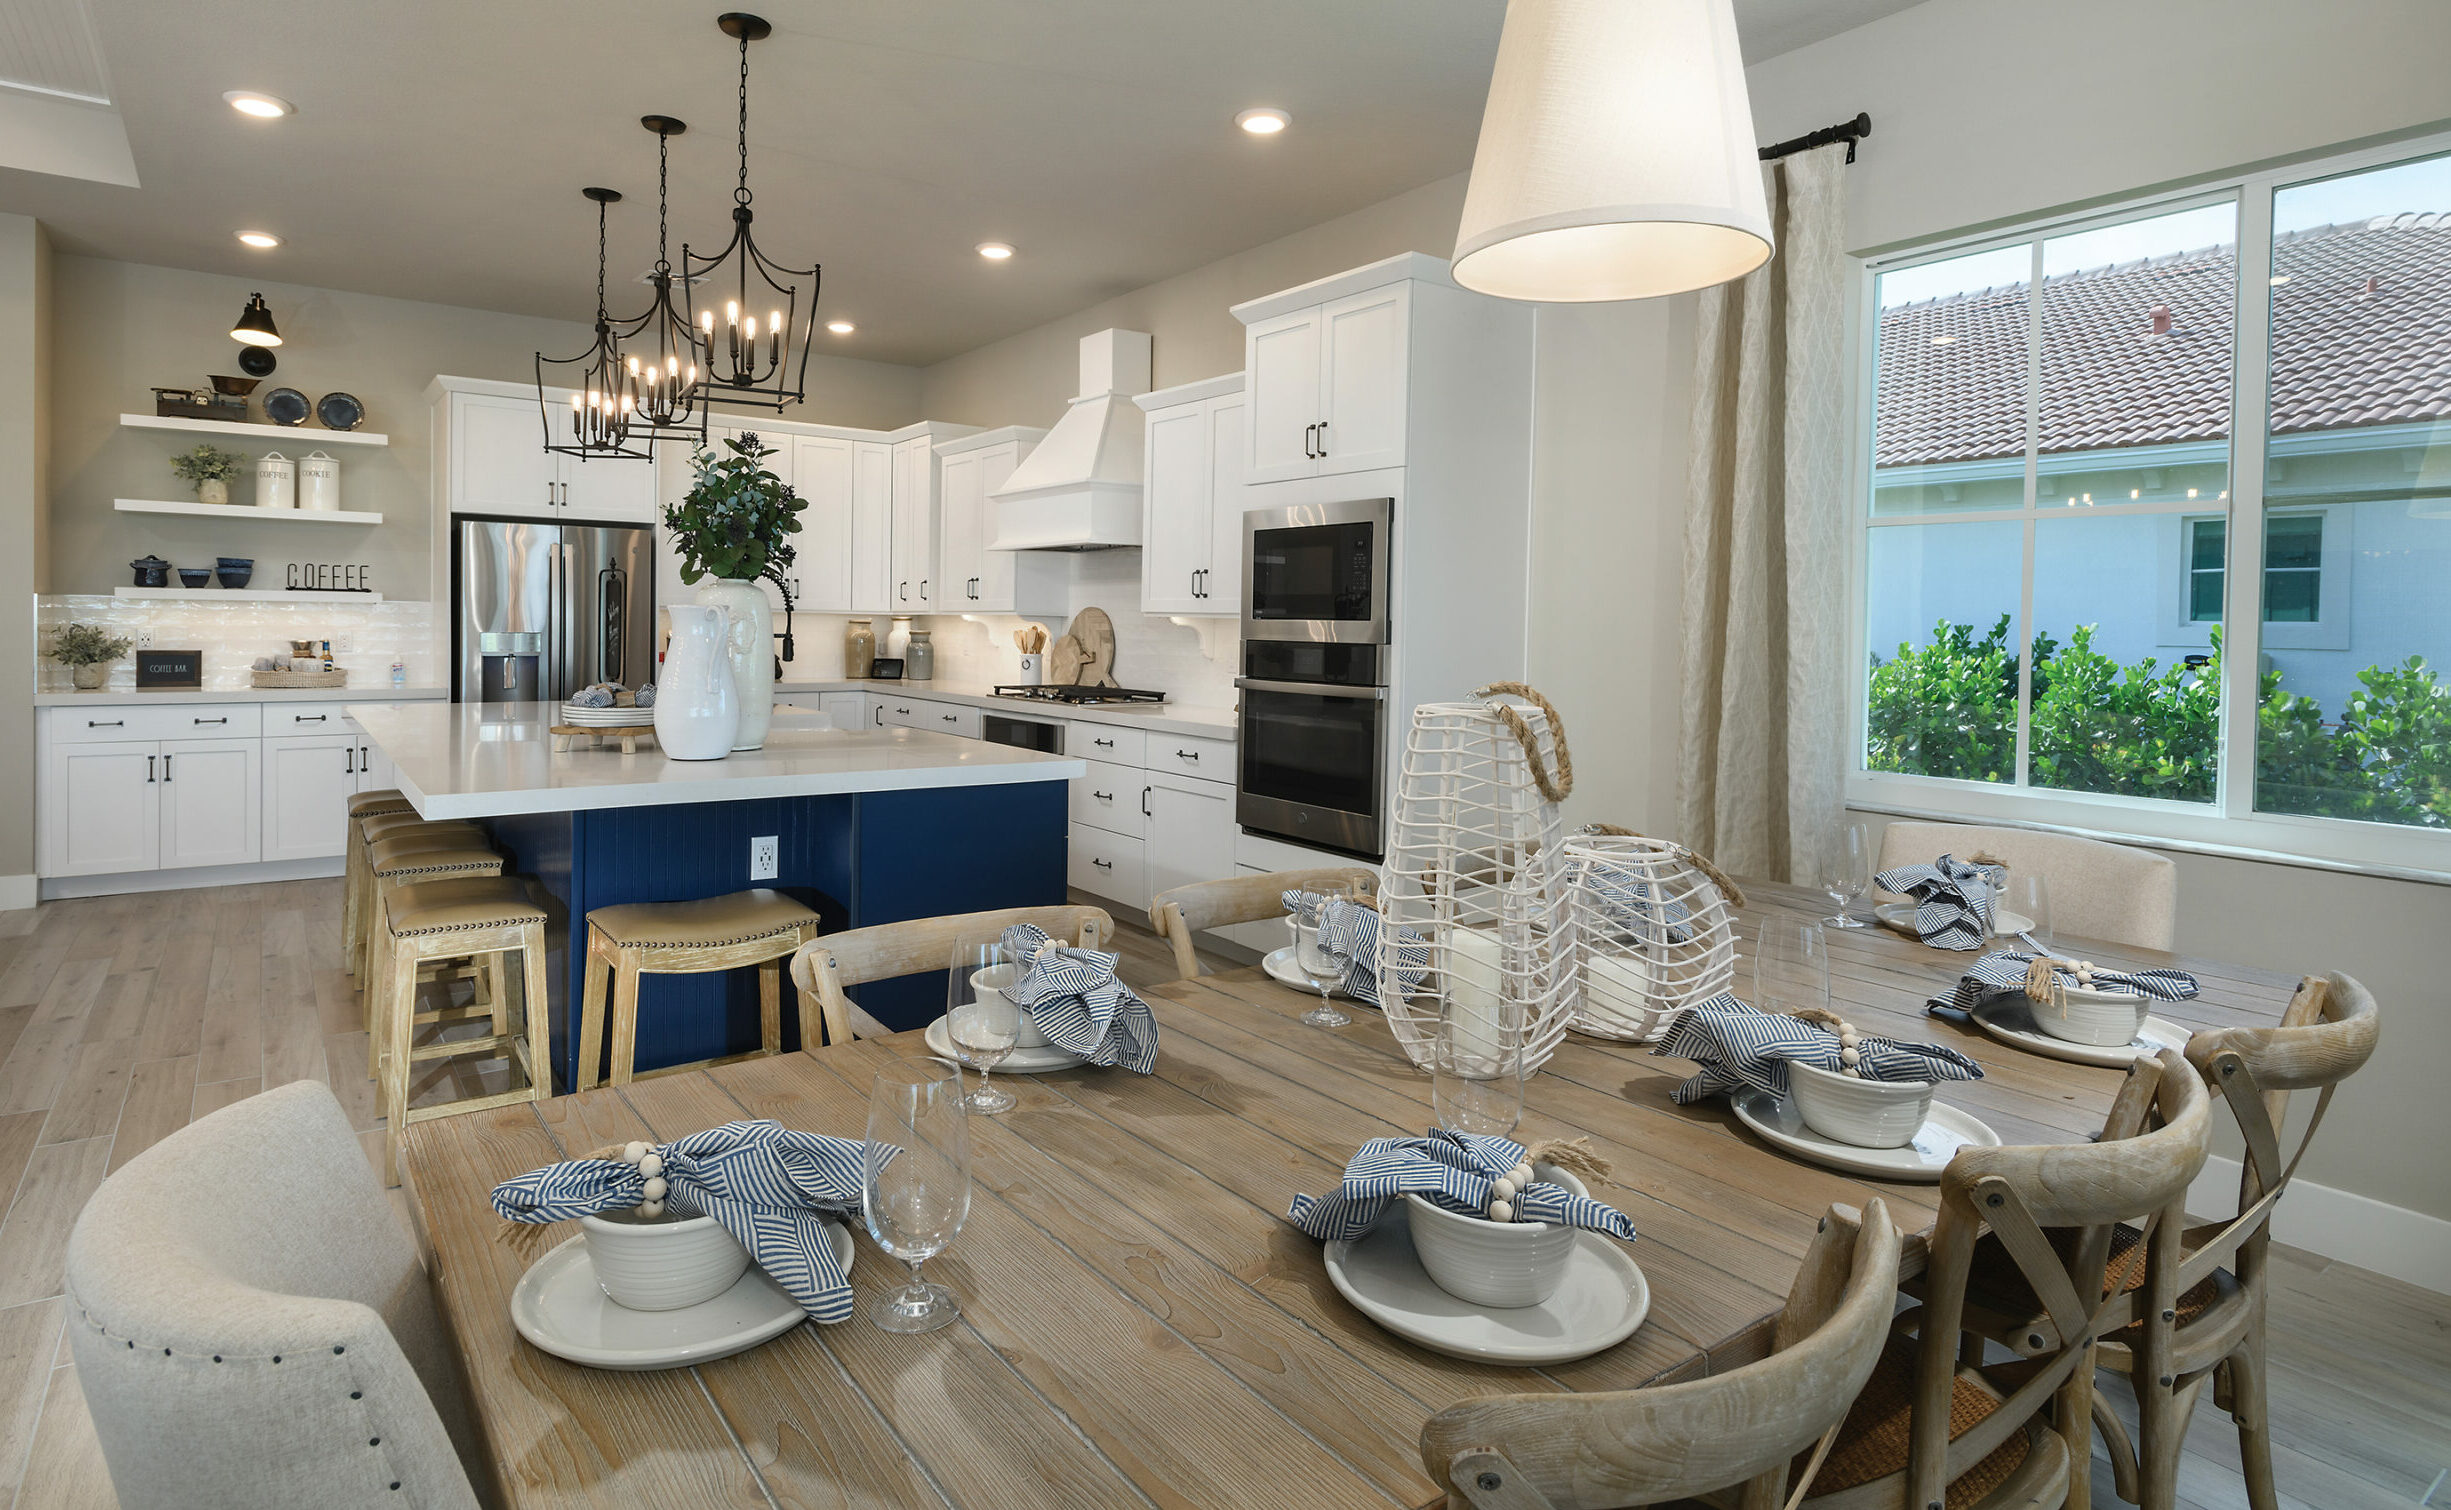 Luxury model home kitchen and dinning area.